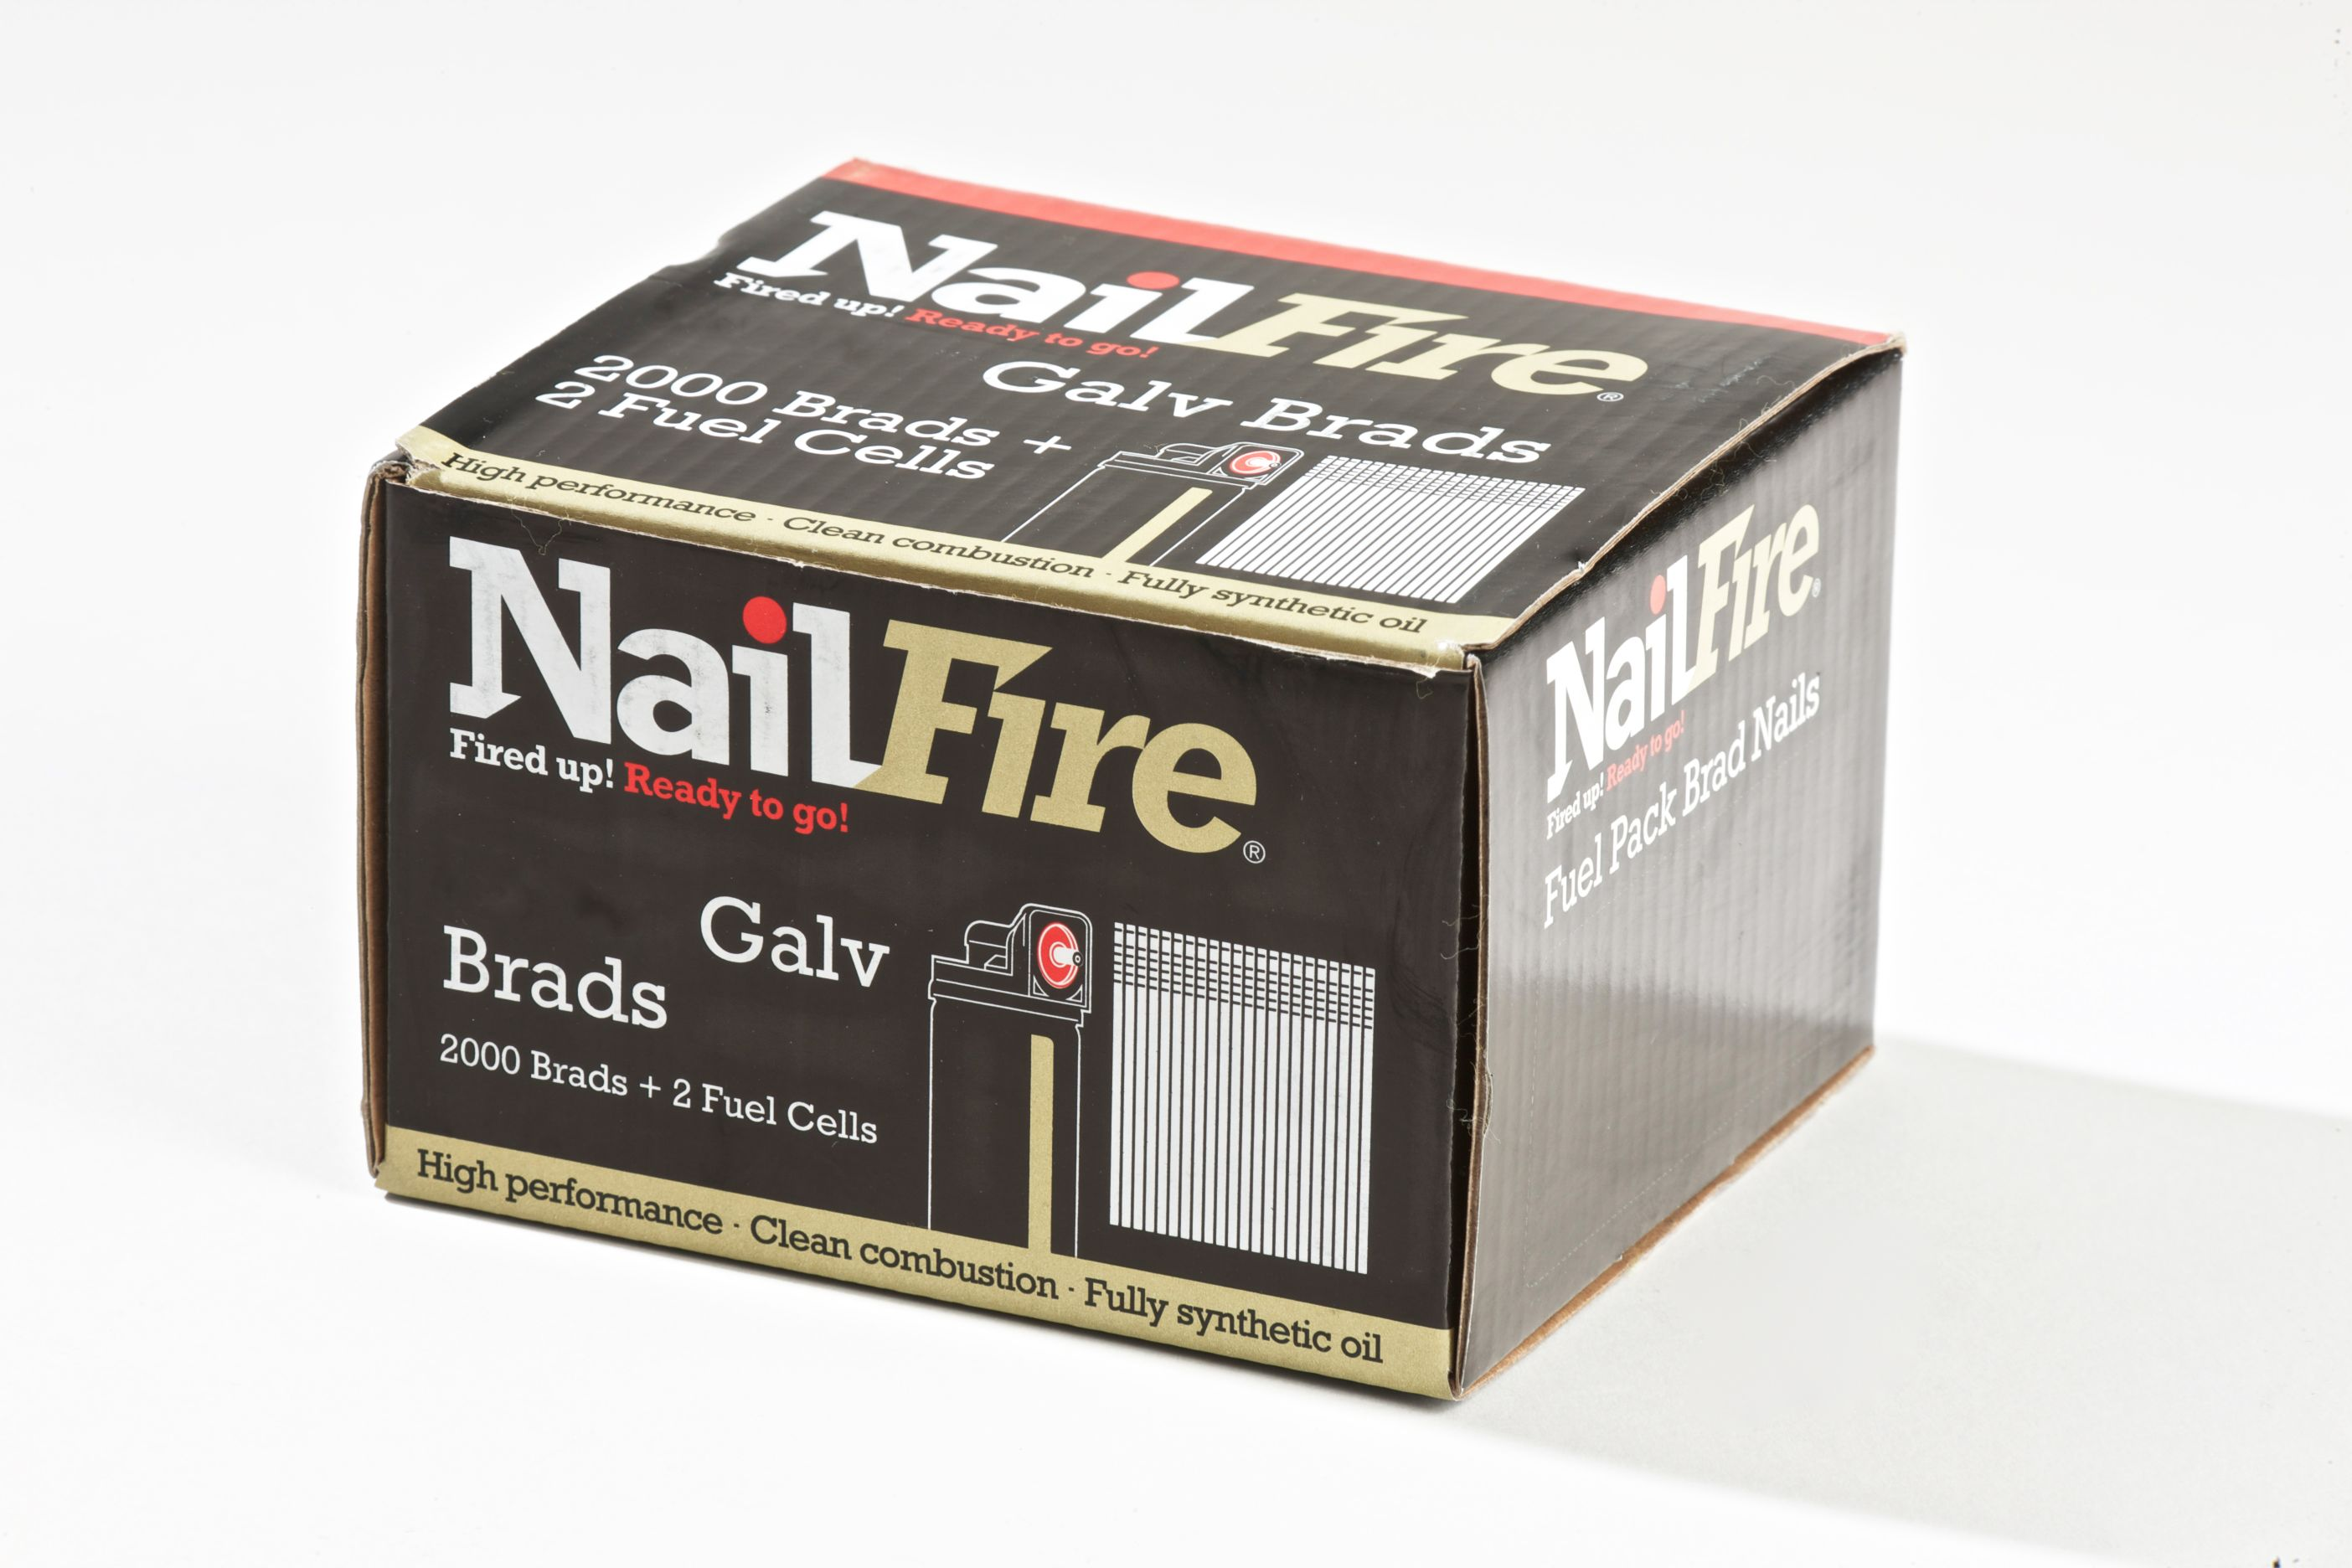 NAILFIRE 2ND FIX STRAIGHT E-GALV BRAD & FUEL PACK 50MM (TUB OF 2000)